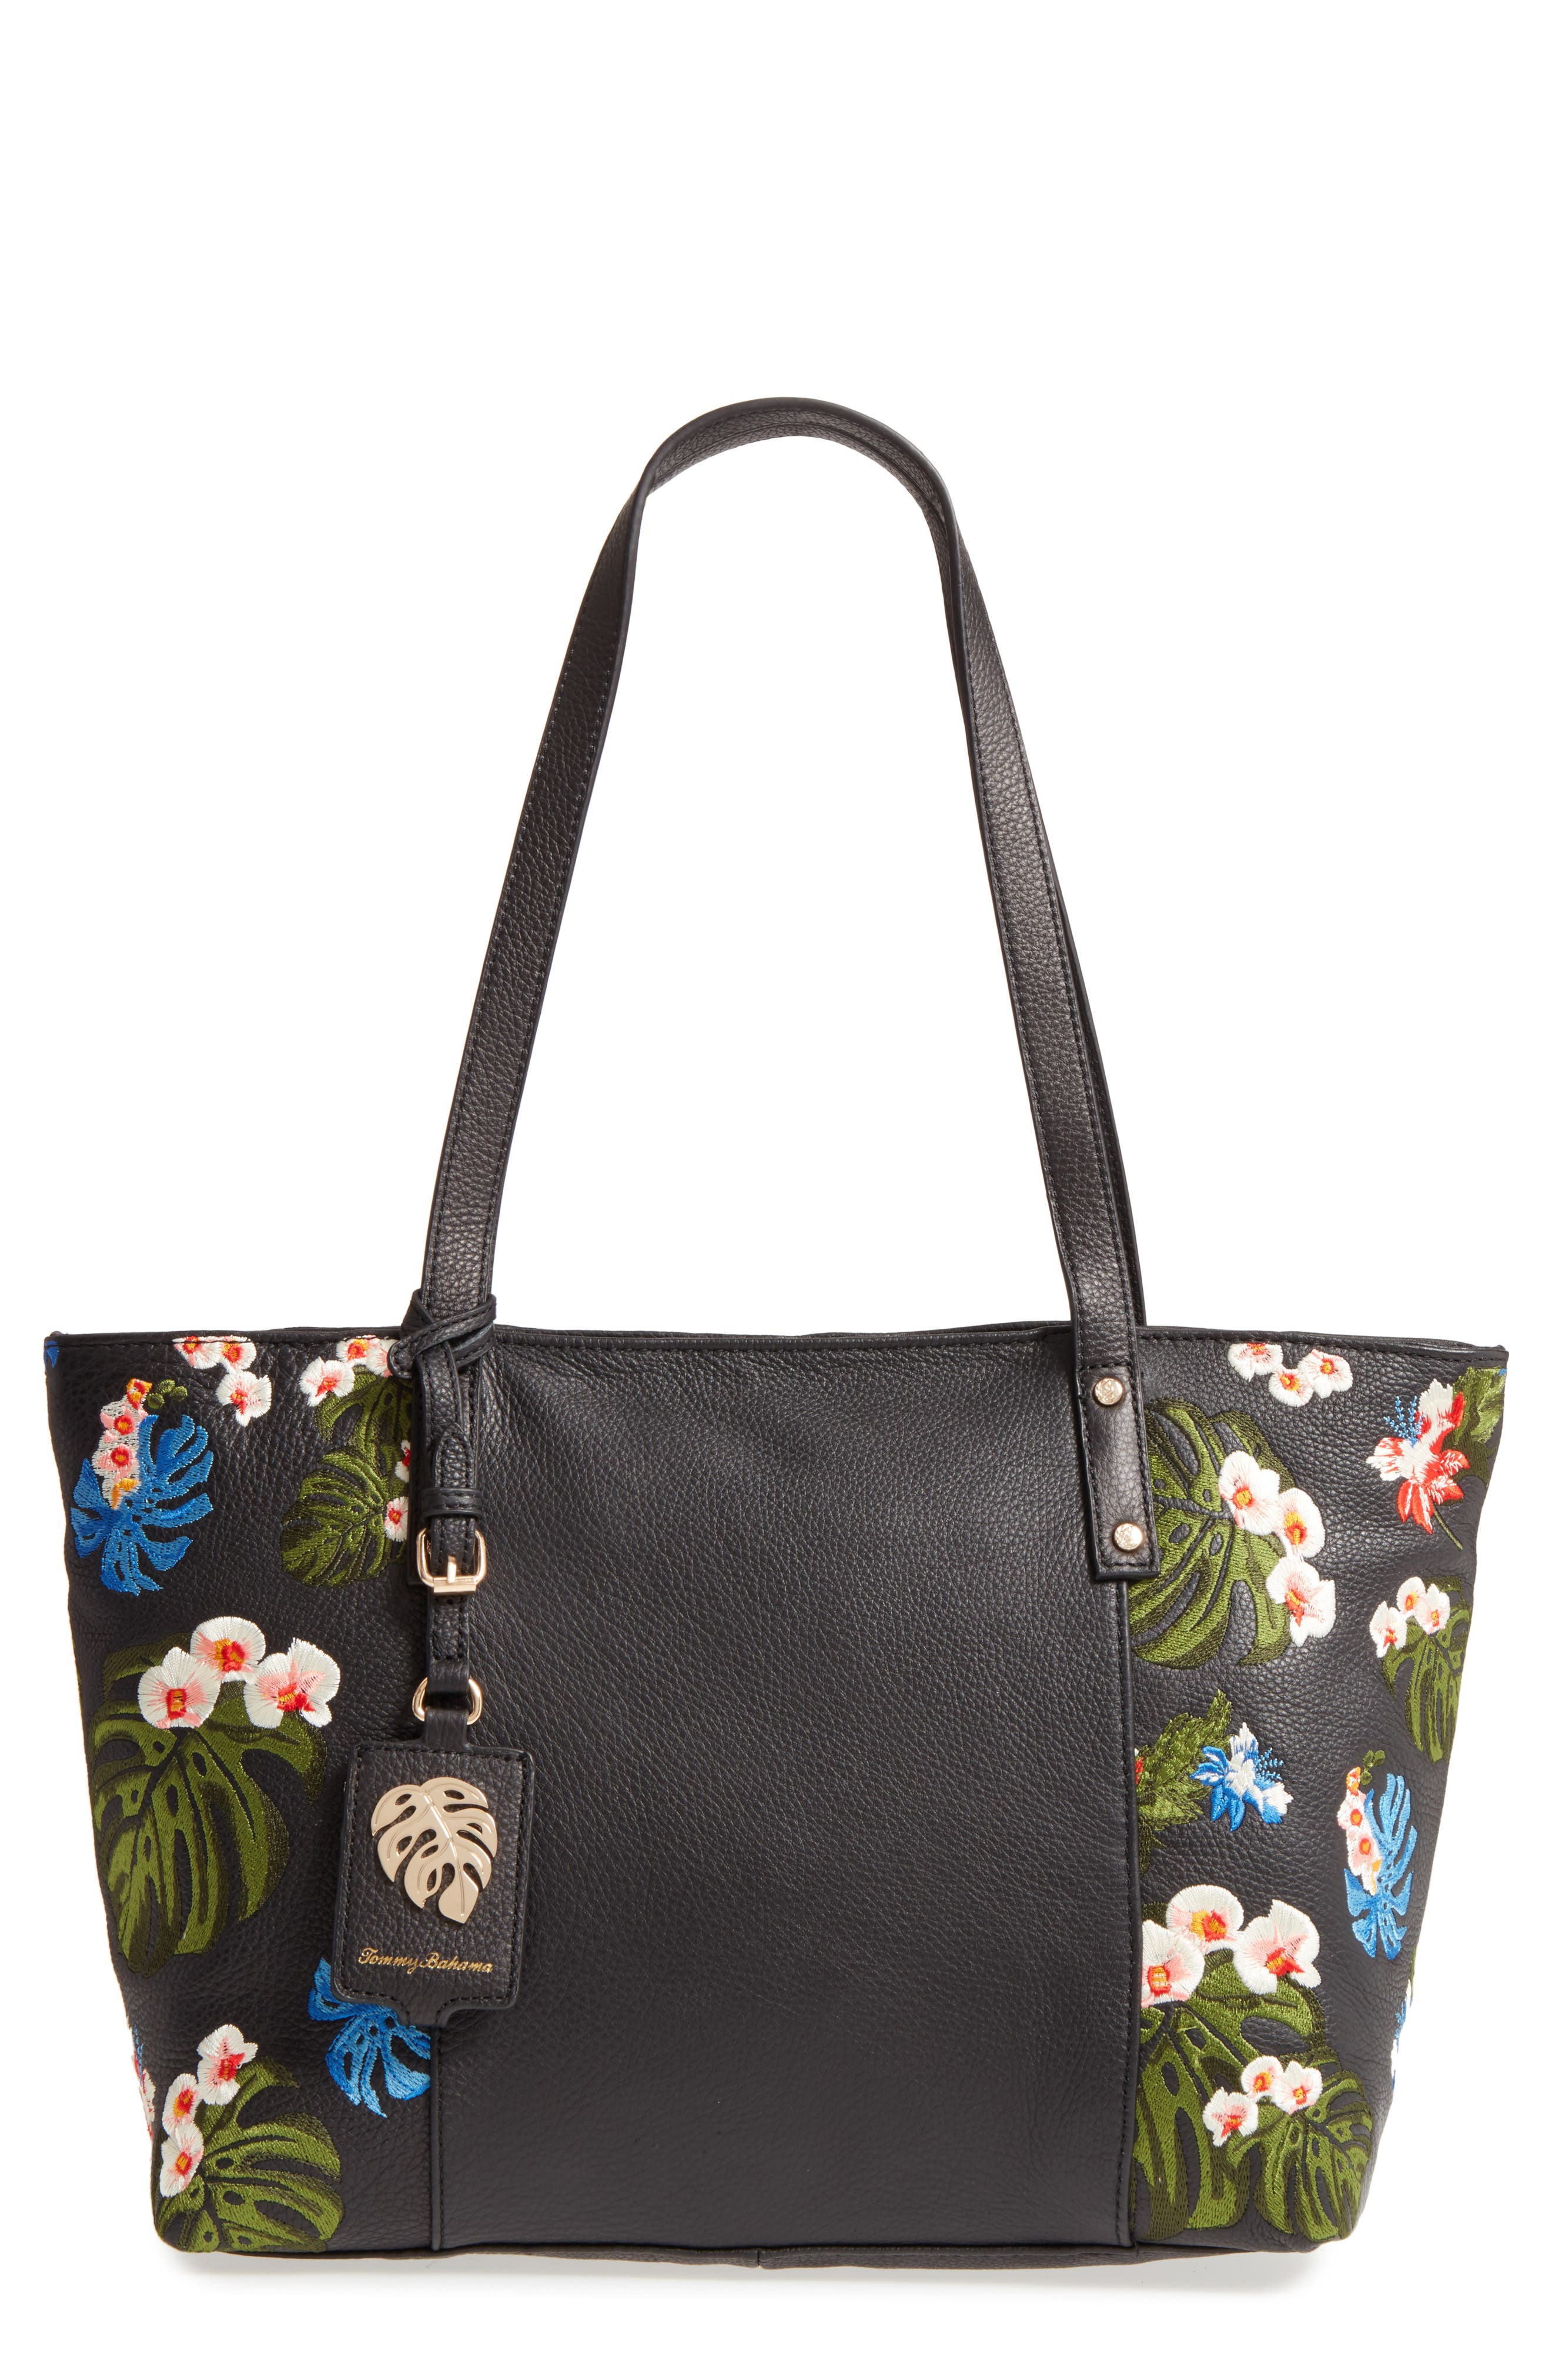 Cozumel Floral Embroidered Leather Tote,                             Main thumbnail 1, color,                             001